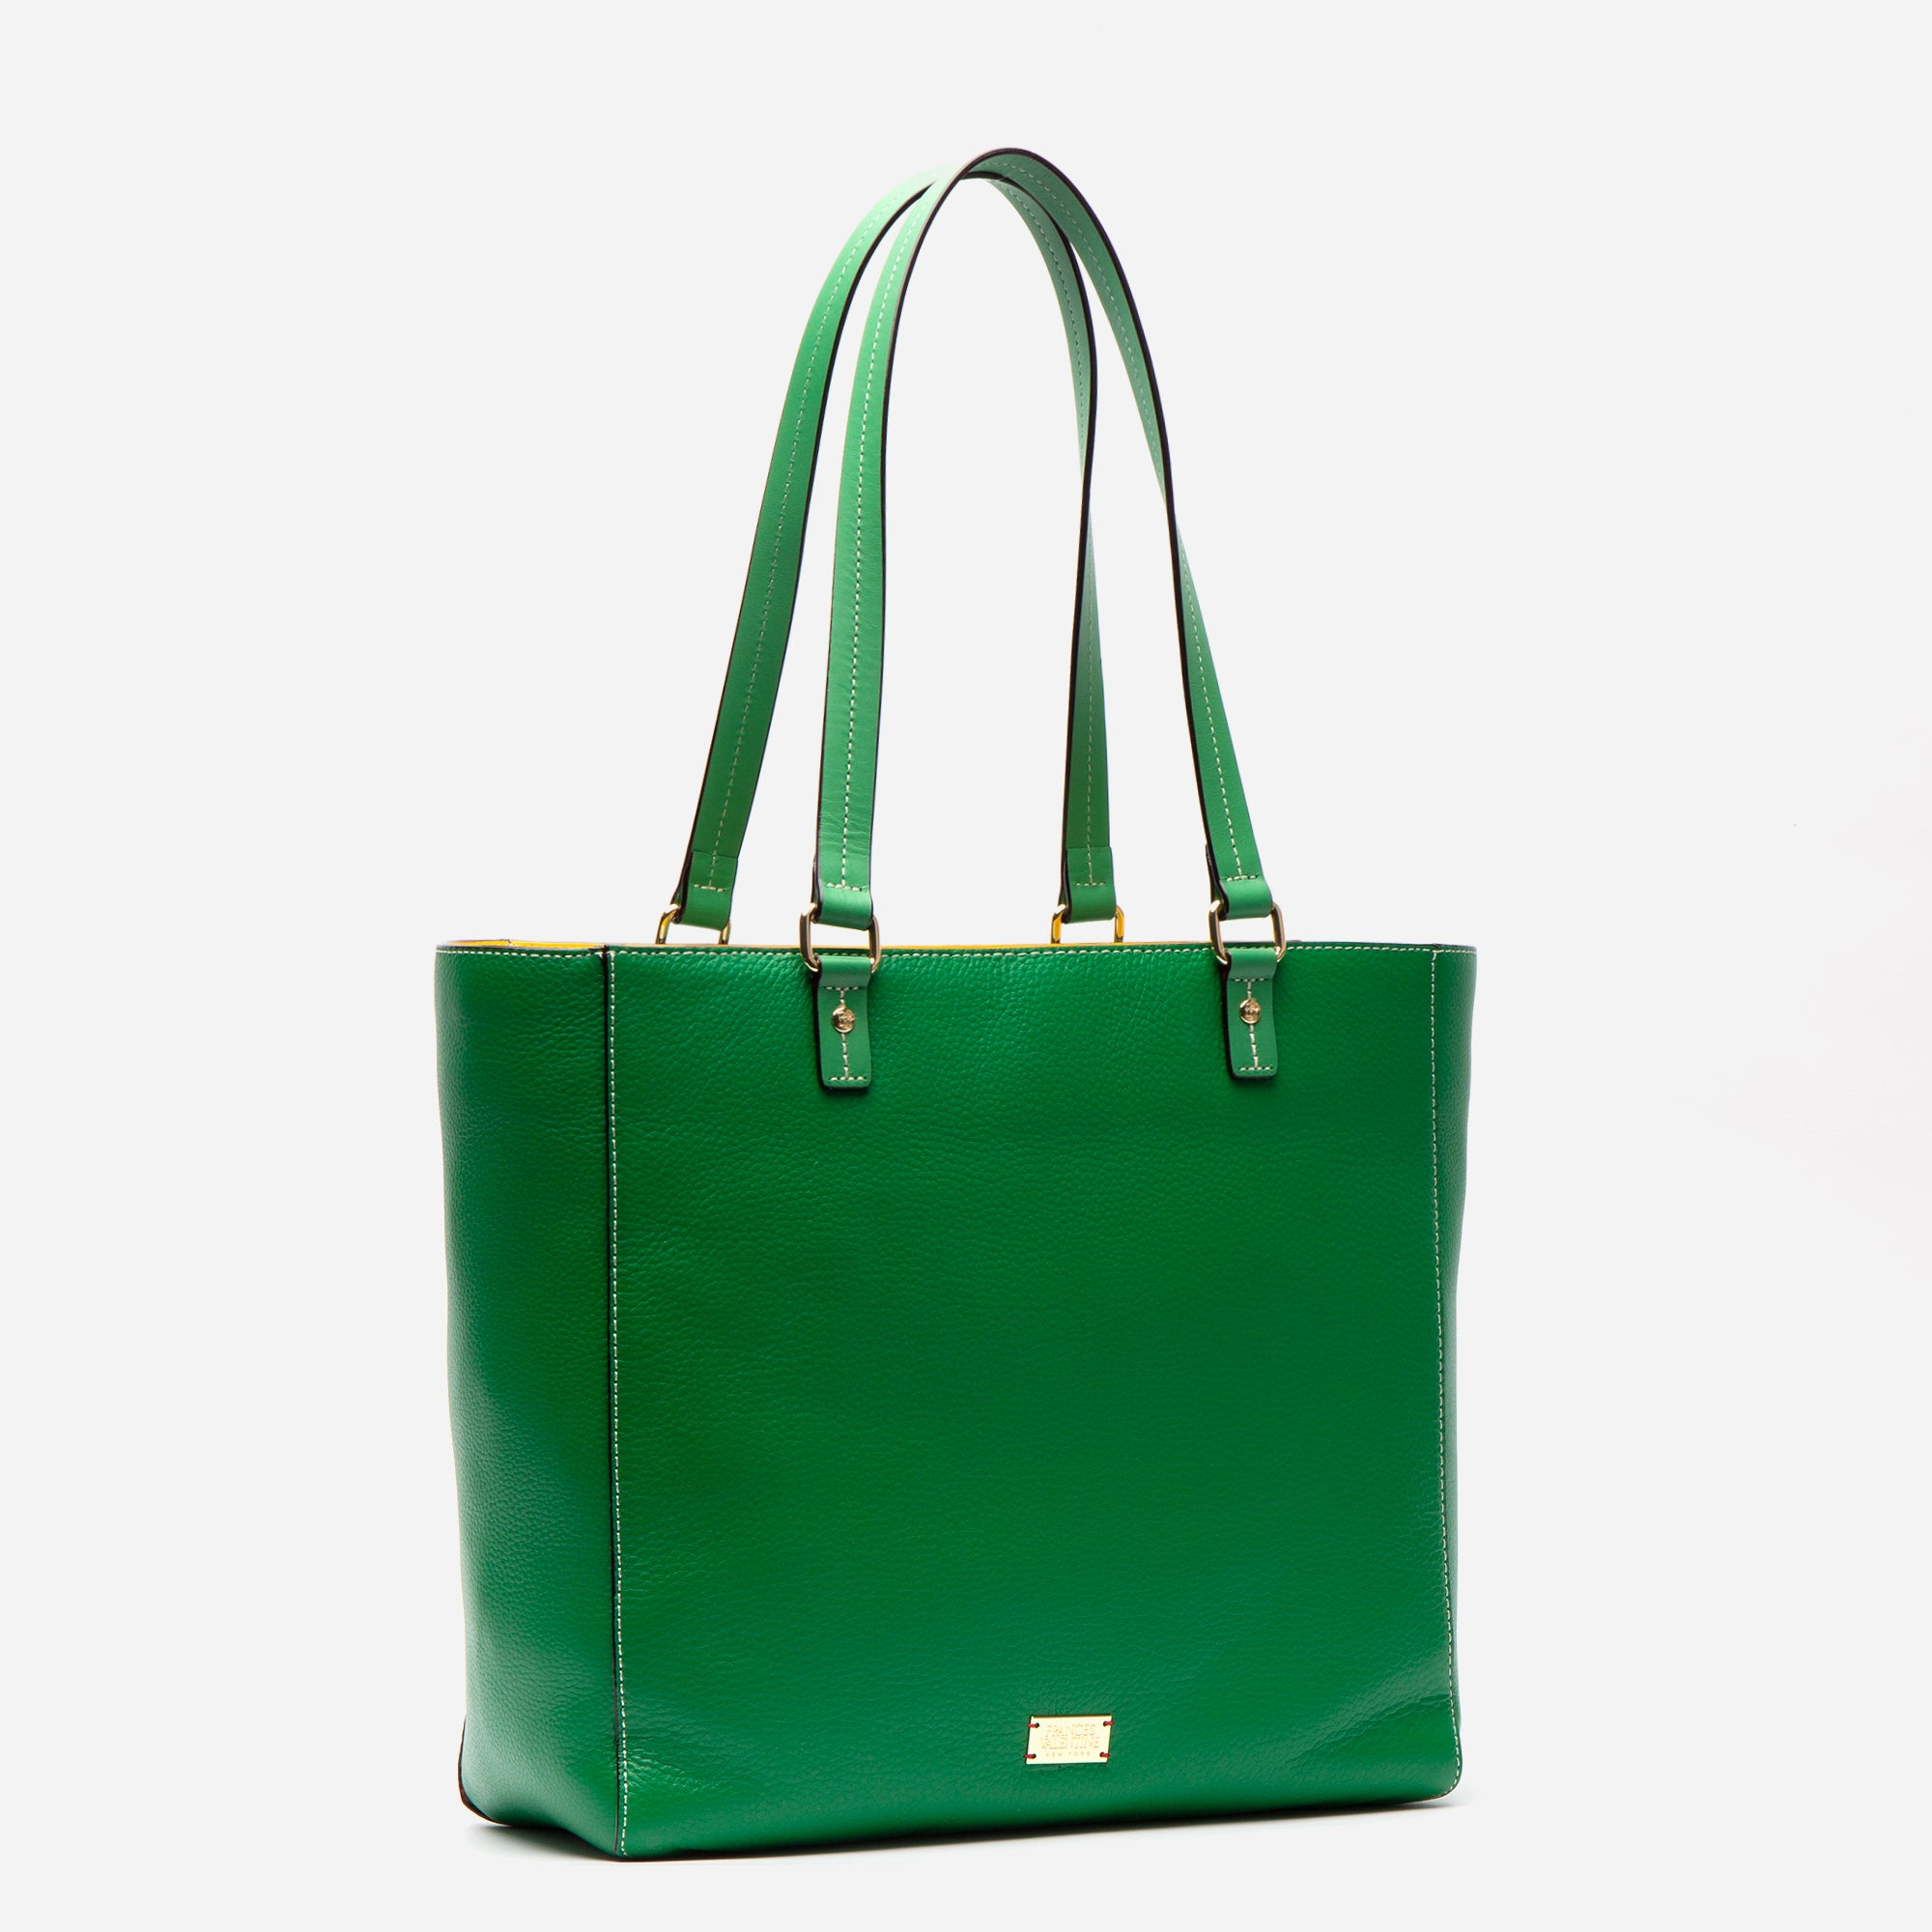 Margie Tote Tumbled Leather Green